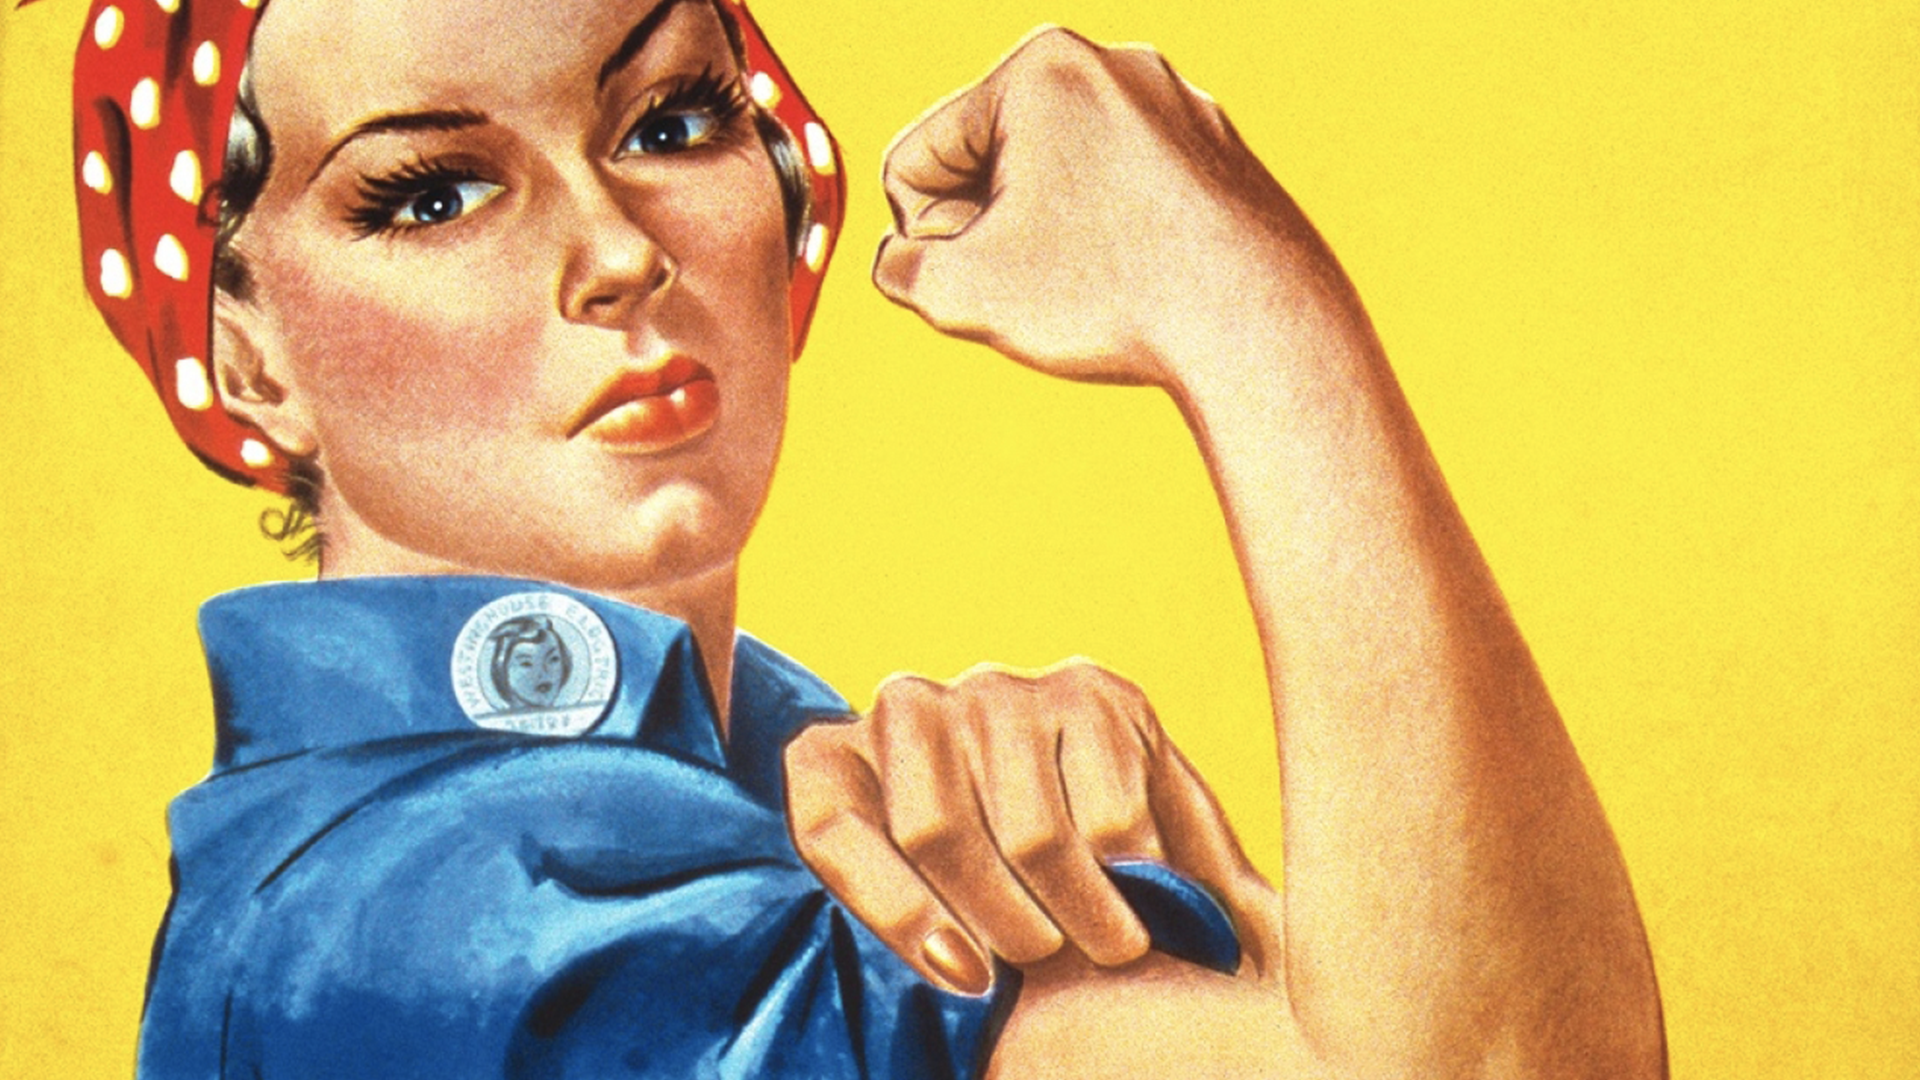 On Labor Day, Let's Consider a New 'Woman of Valor'